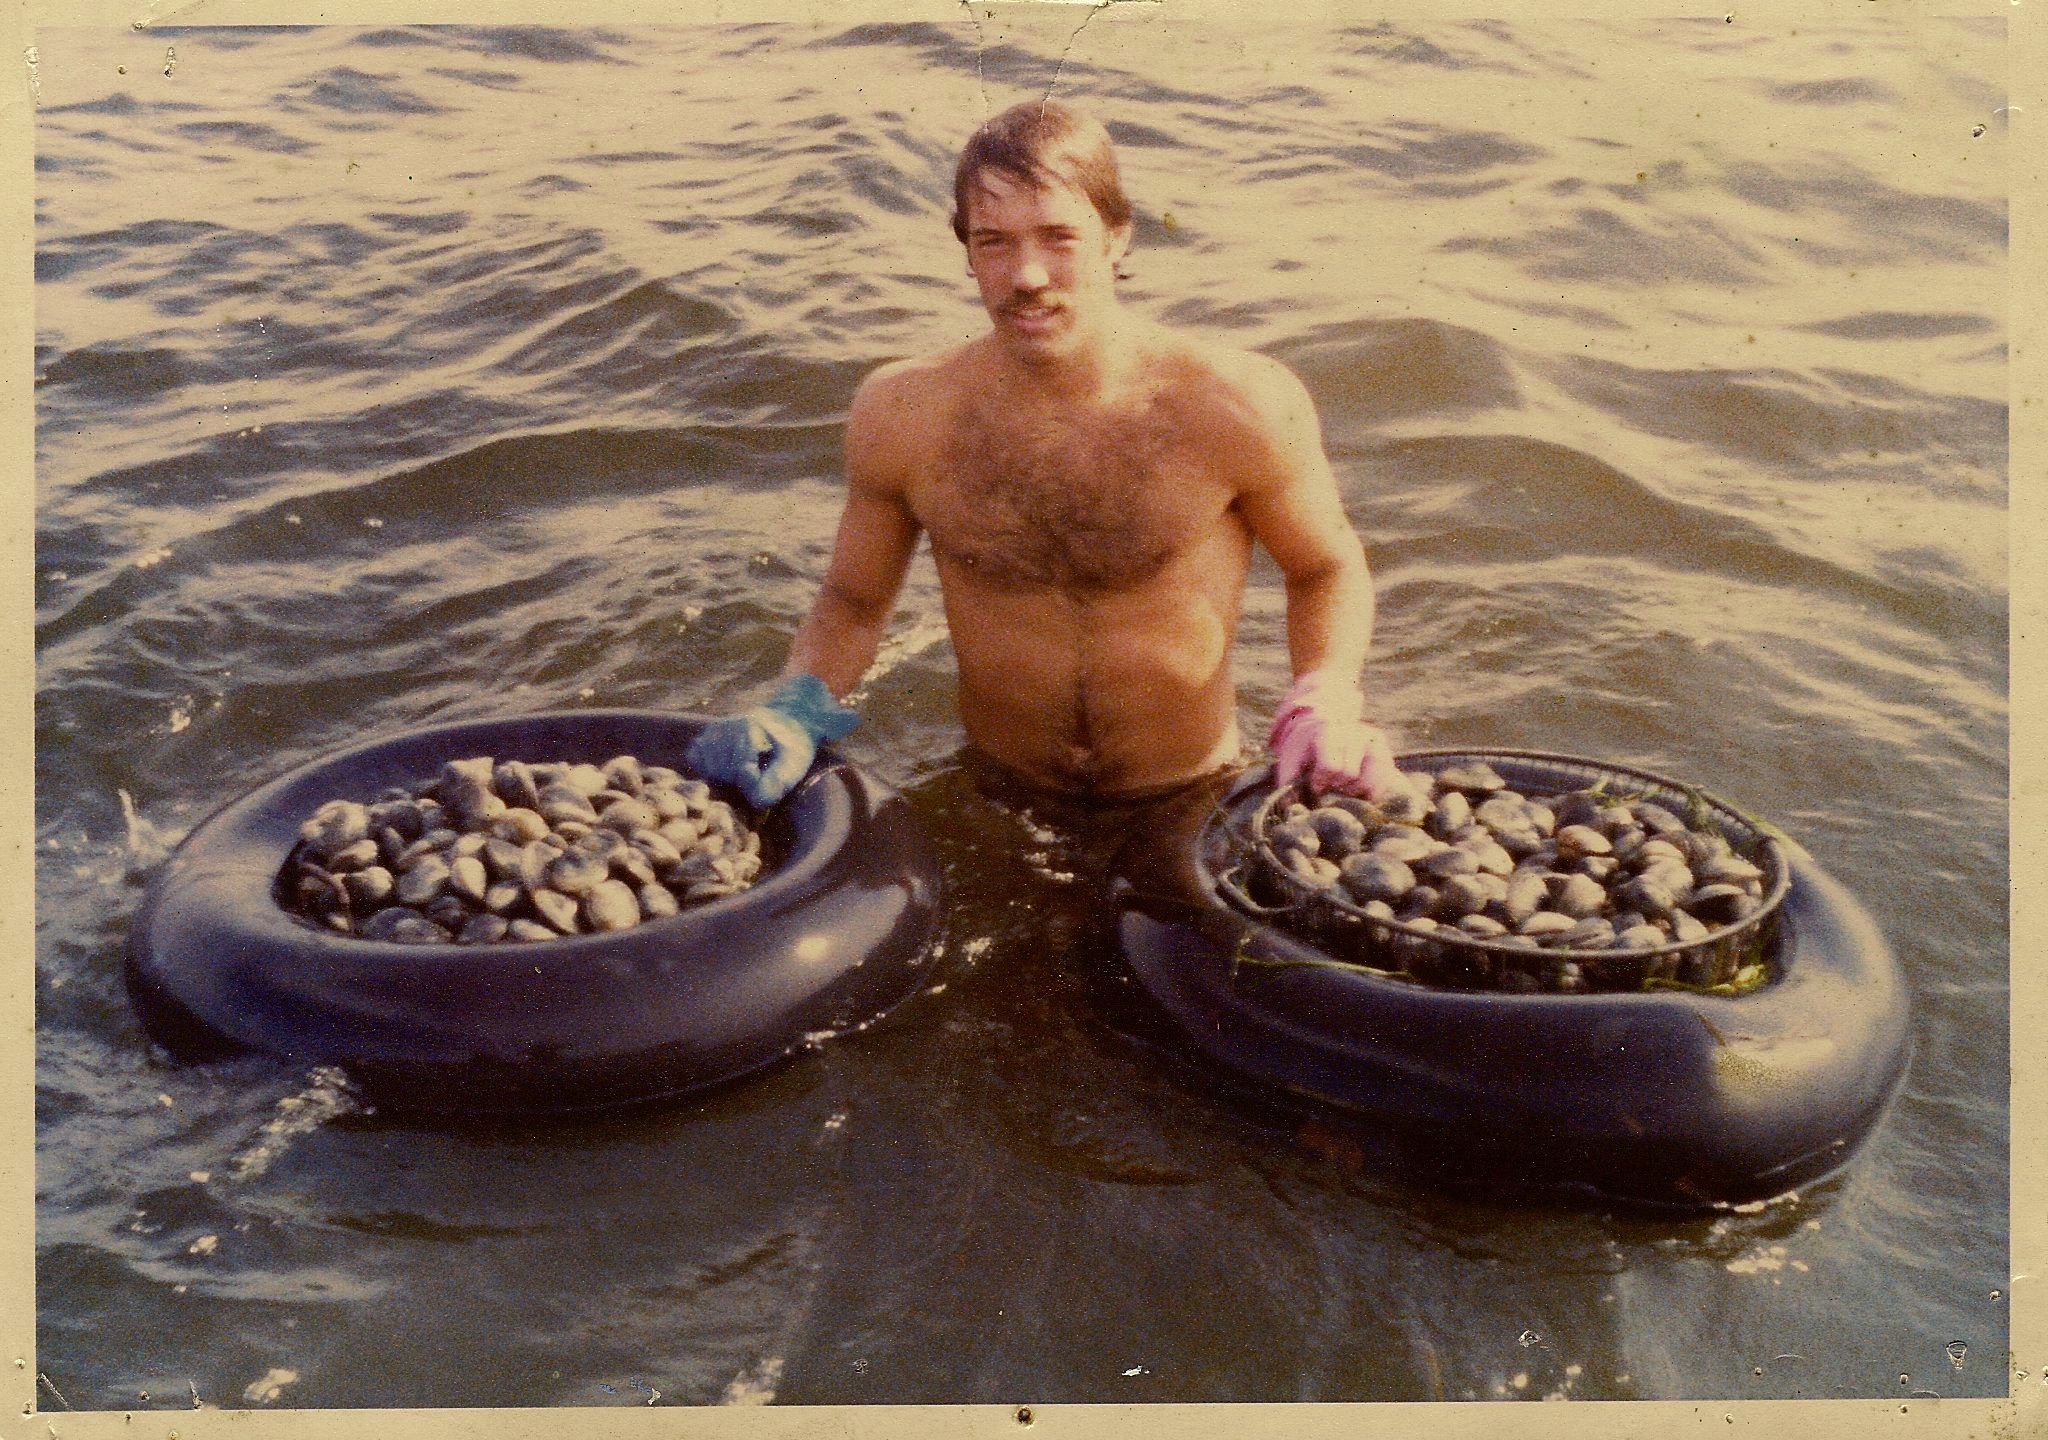 man in ocean with buckets of clams